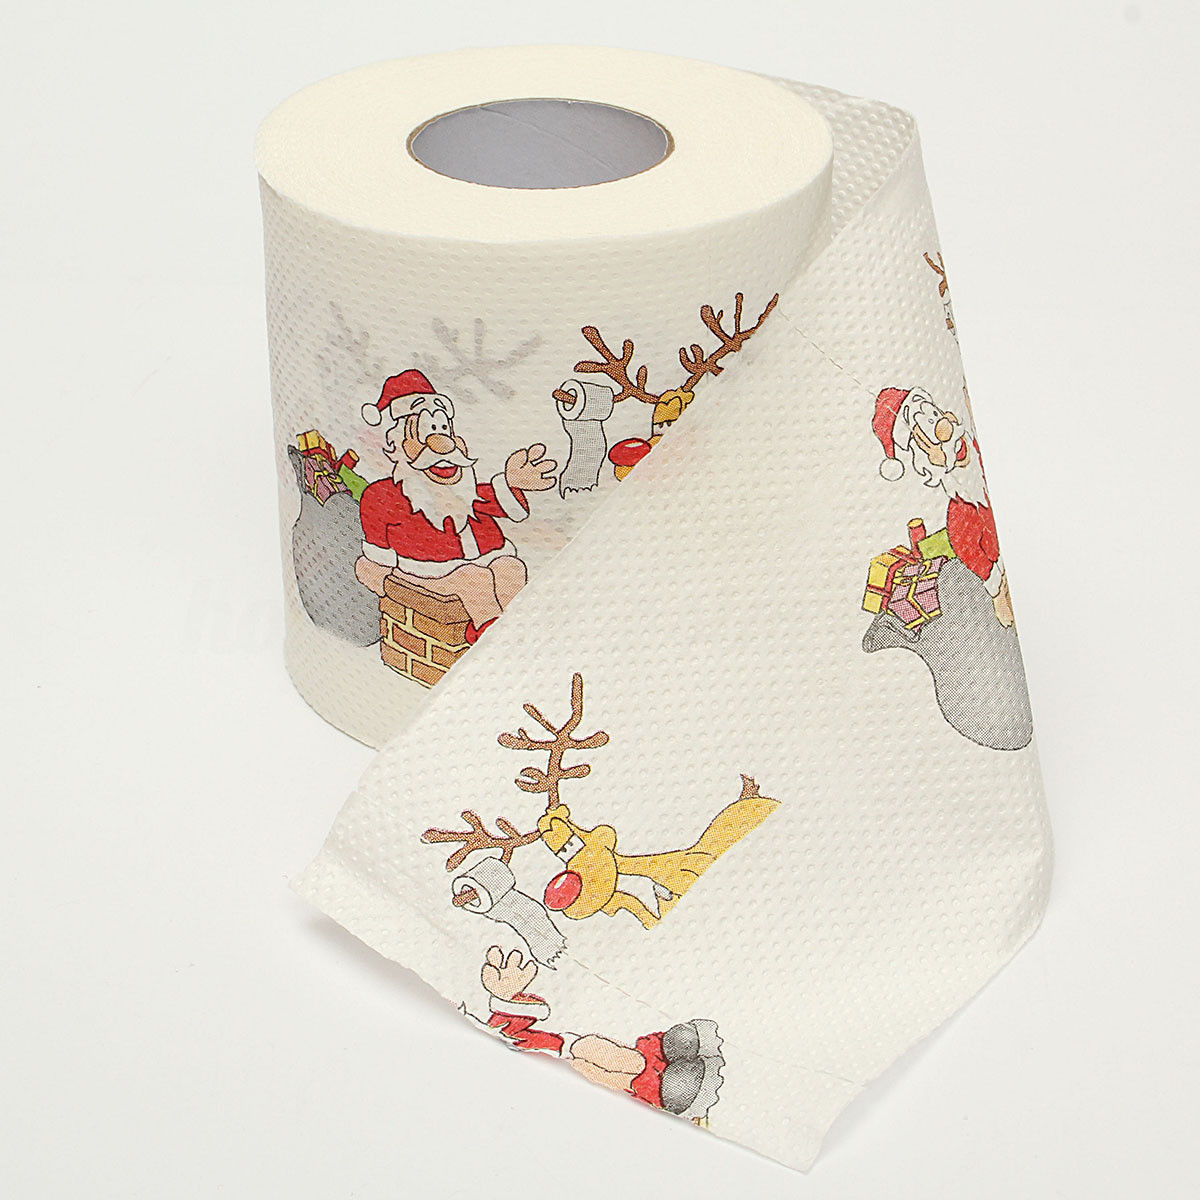 2019 Santa Claus Reindeer Print Christmas Toilet Paper Christmas Decorations For Table New Year Home Decor Gifts Souvenirs